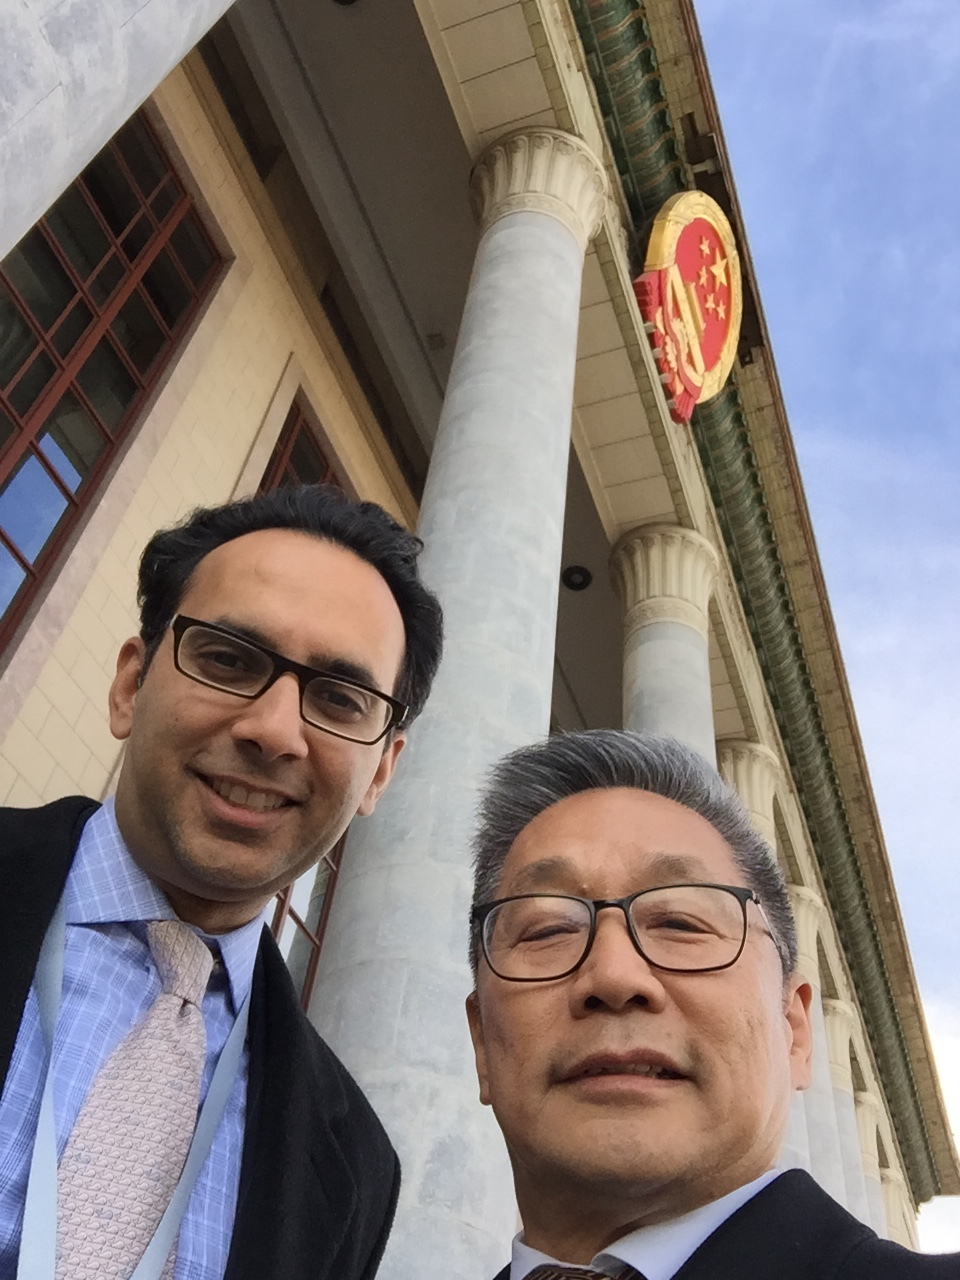 Asheesh Advani with JA China Board Chair and Founder, Paul Chou. Entering Great Hall of the People in Tiananmen Square.